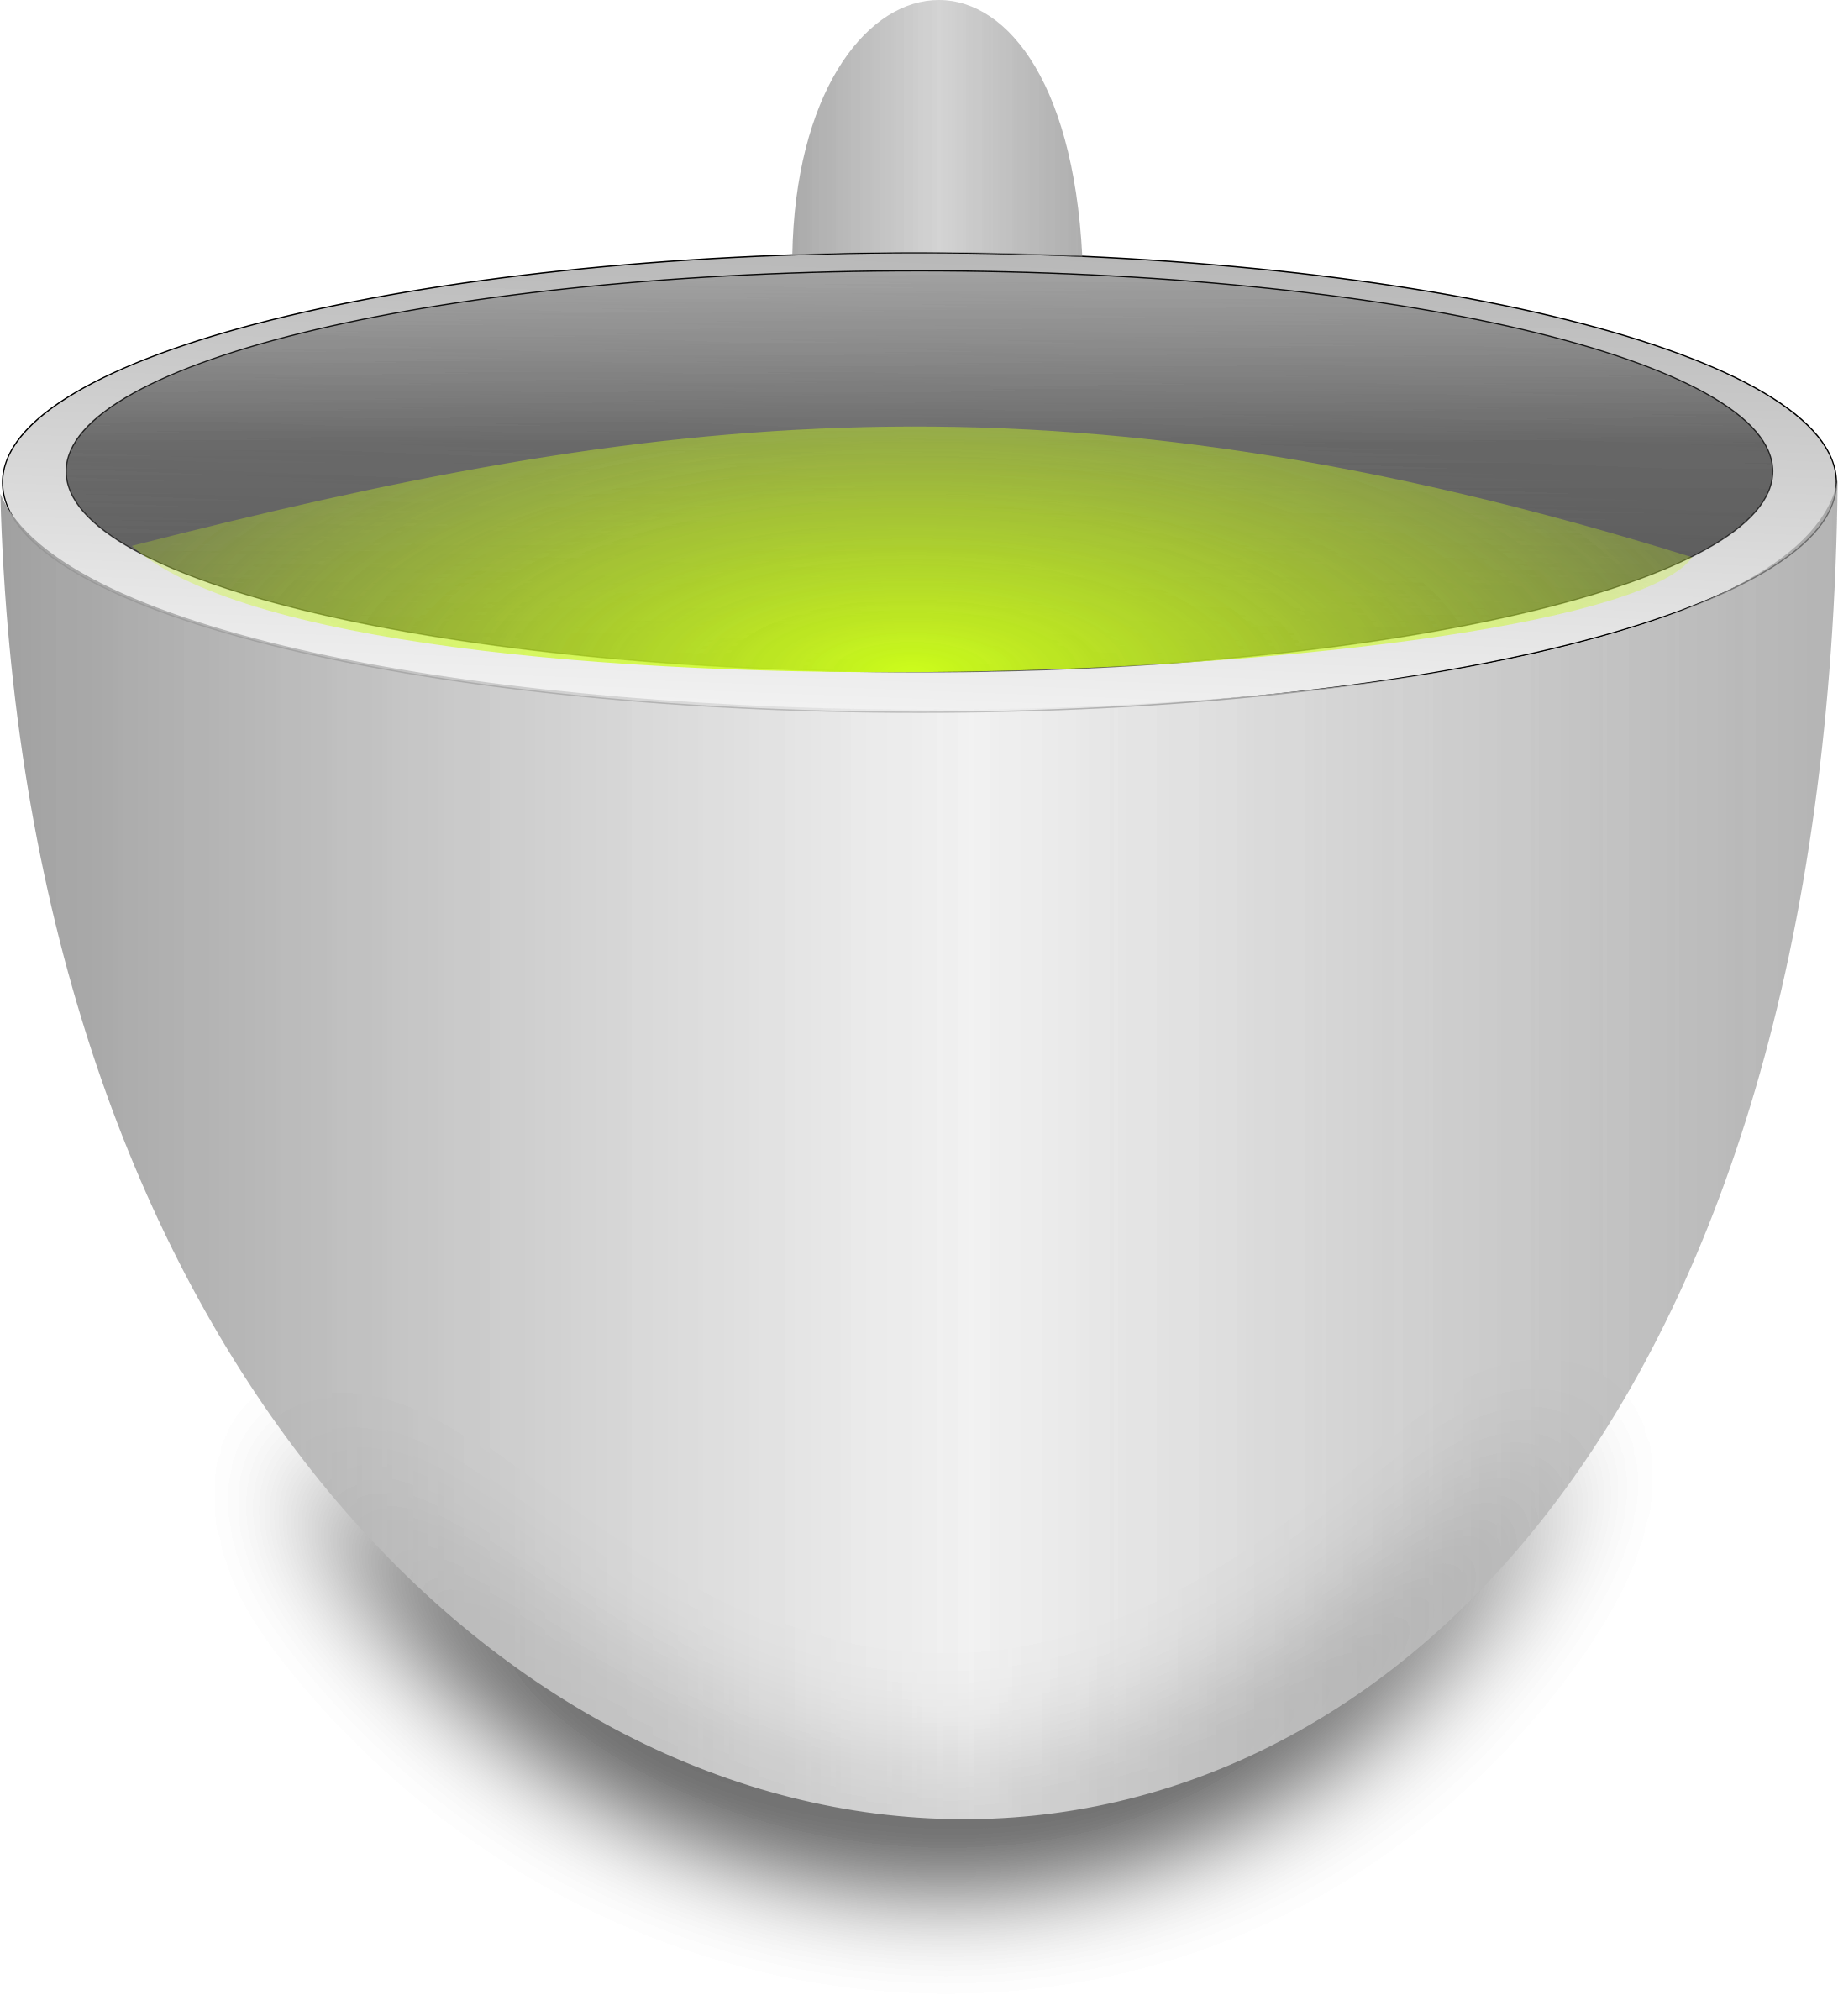 green tea cup PNG image